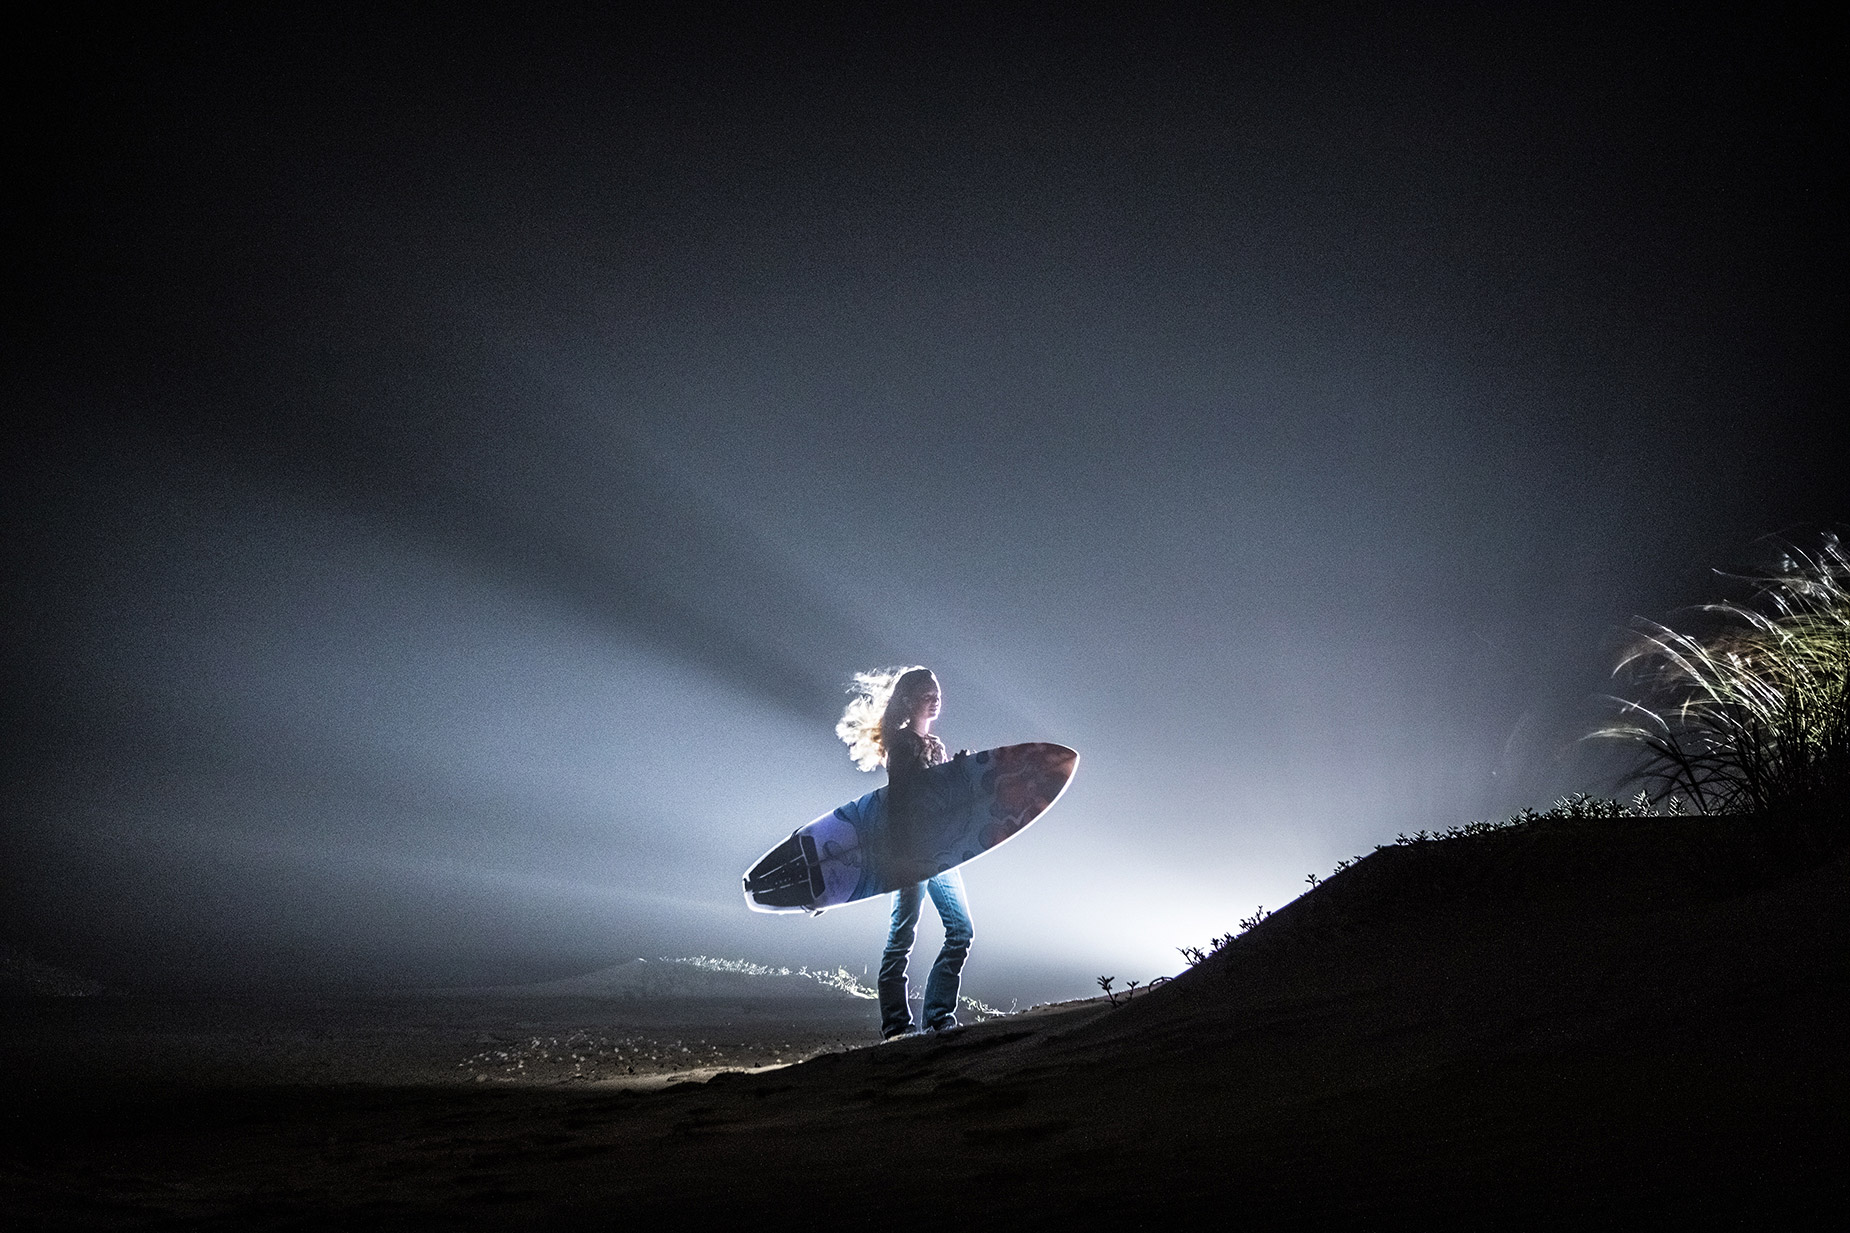 Girl holding surf board at night in dramatic backlight